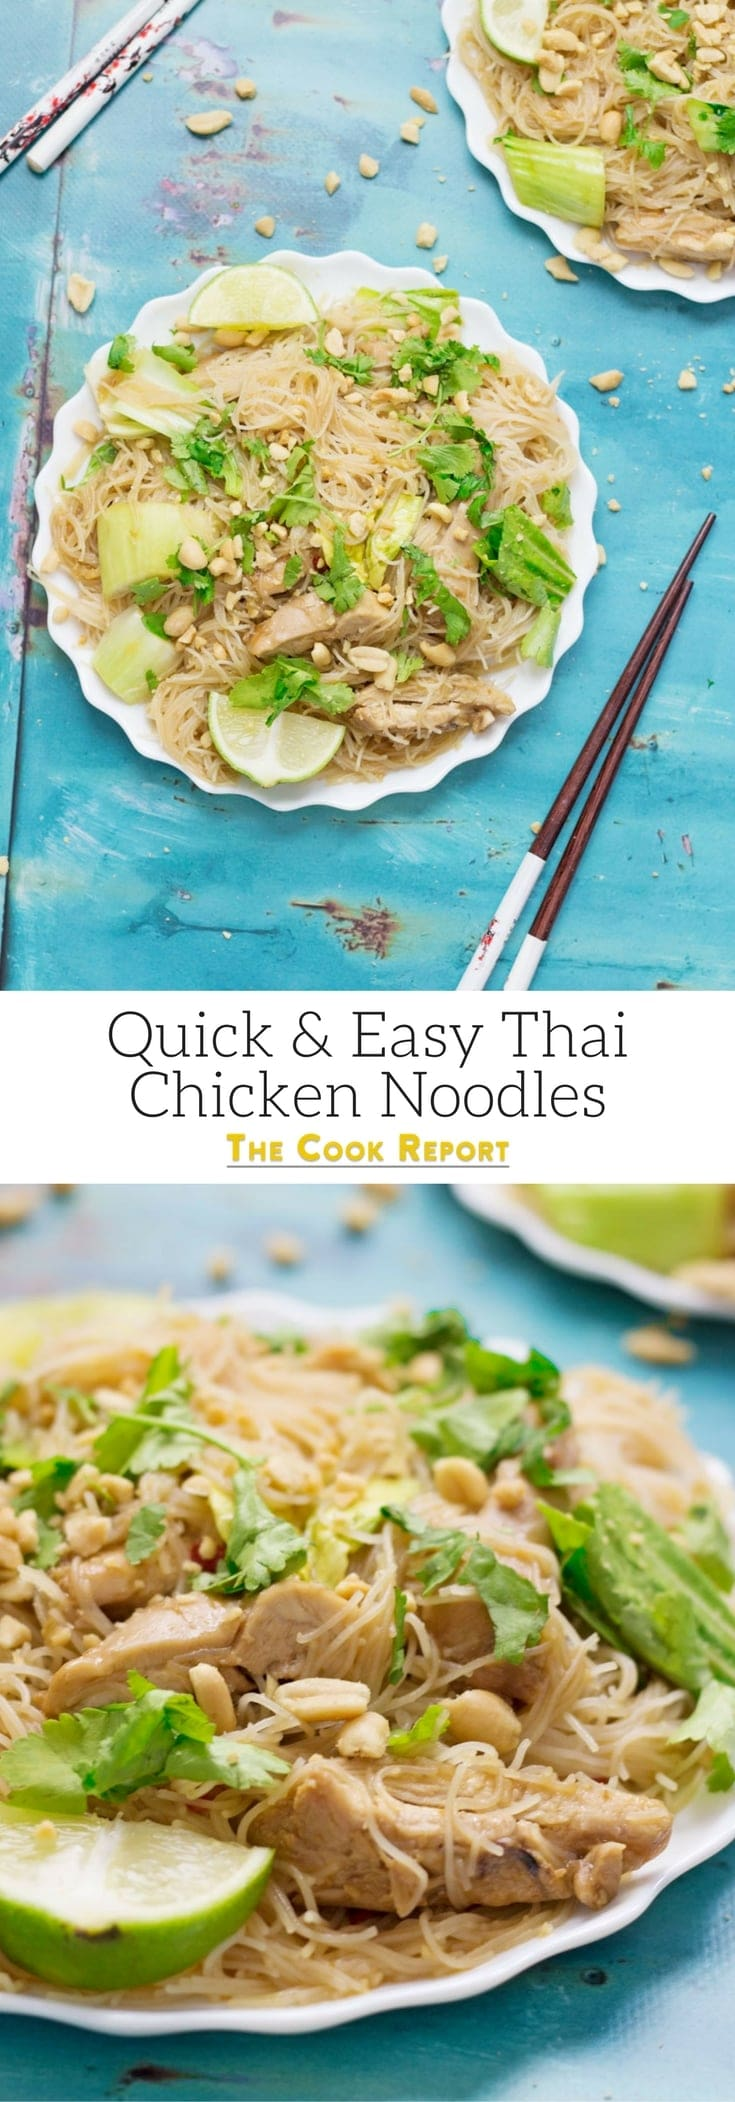 These quick Thai chicken noodles are a great weeknight dinner. They also make brilliant leftovers so make sure you make enough for lunch the next day!